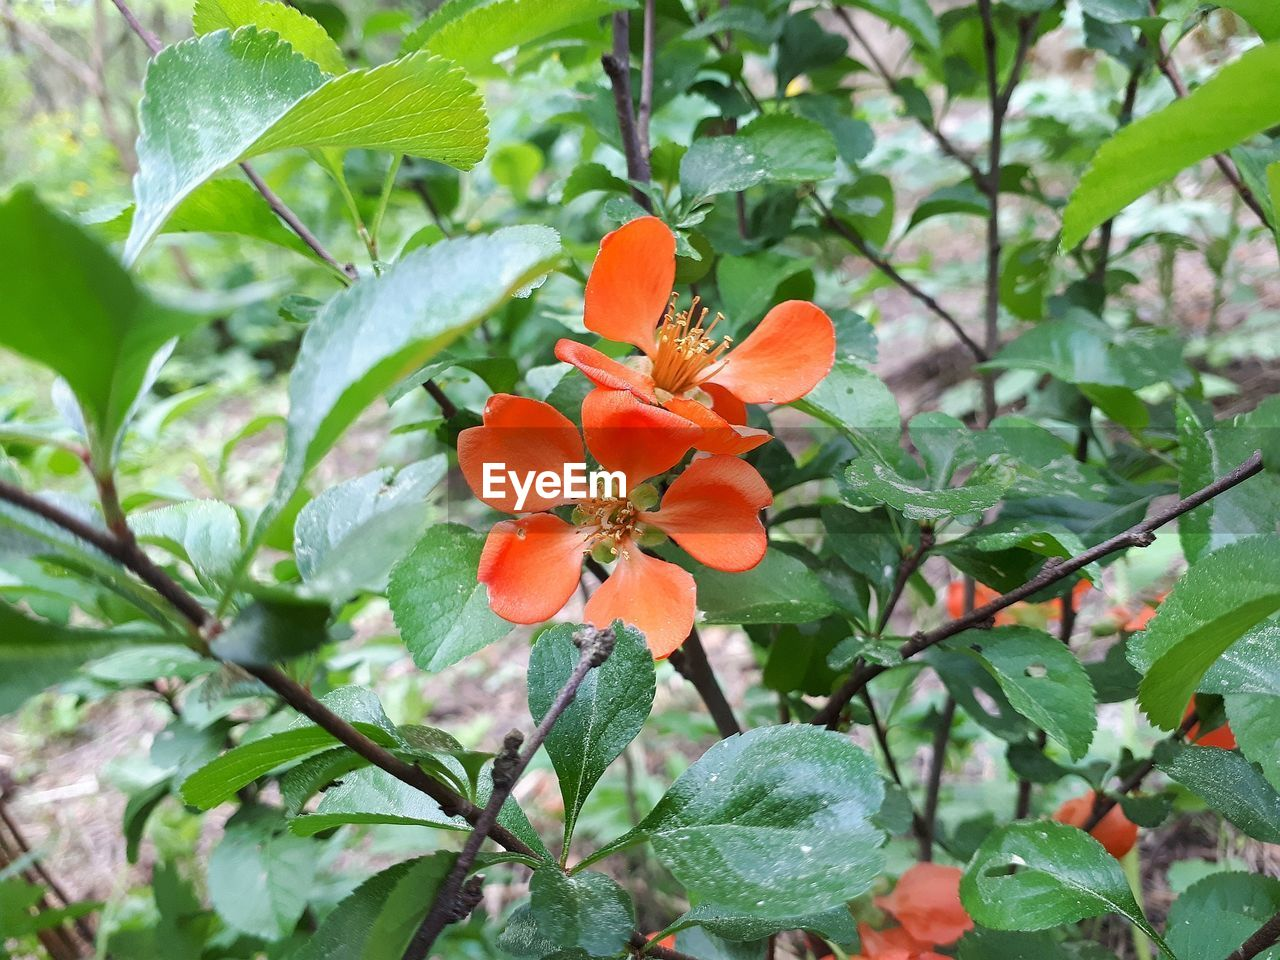 plant, flowering plant, growth, freshness, flower, beauty in nature, leaf, plant part, orange color, petal, fragility, flower head, vulnerability, inflorescence, nature, close-up, no people, focus on foreground, day, green color, orange, outdoors